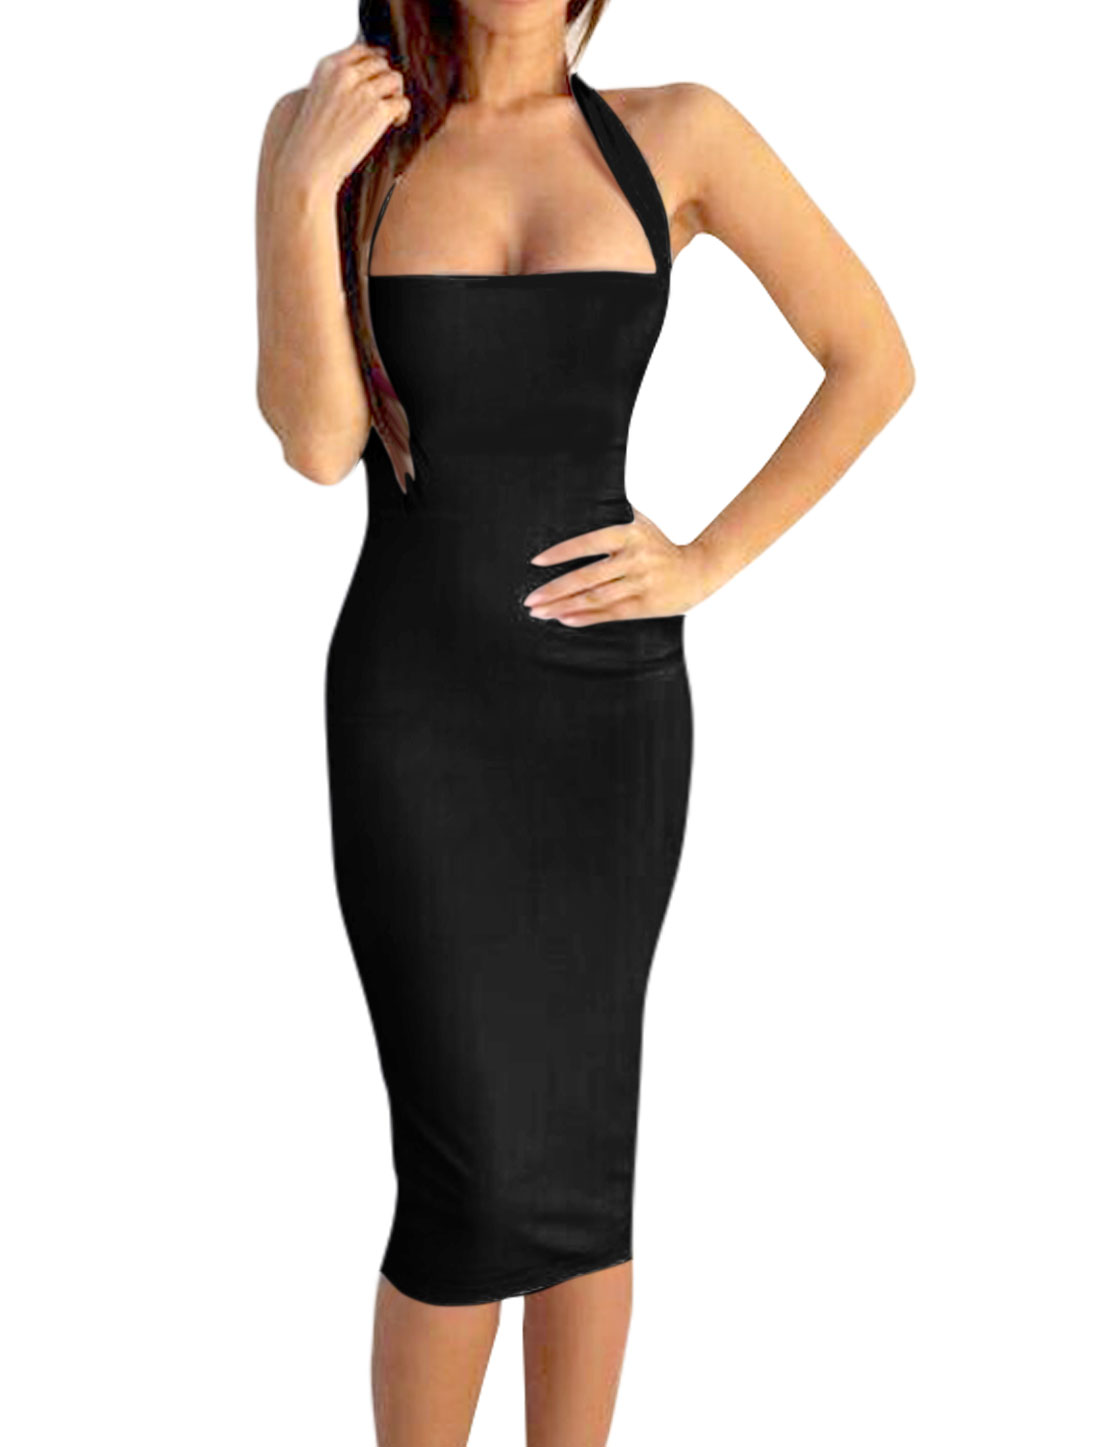 Women Halter Neck Sleeveless Open Back Sheath Dress Black L